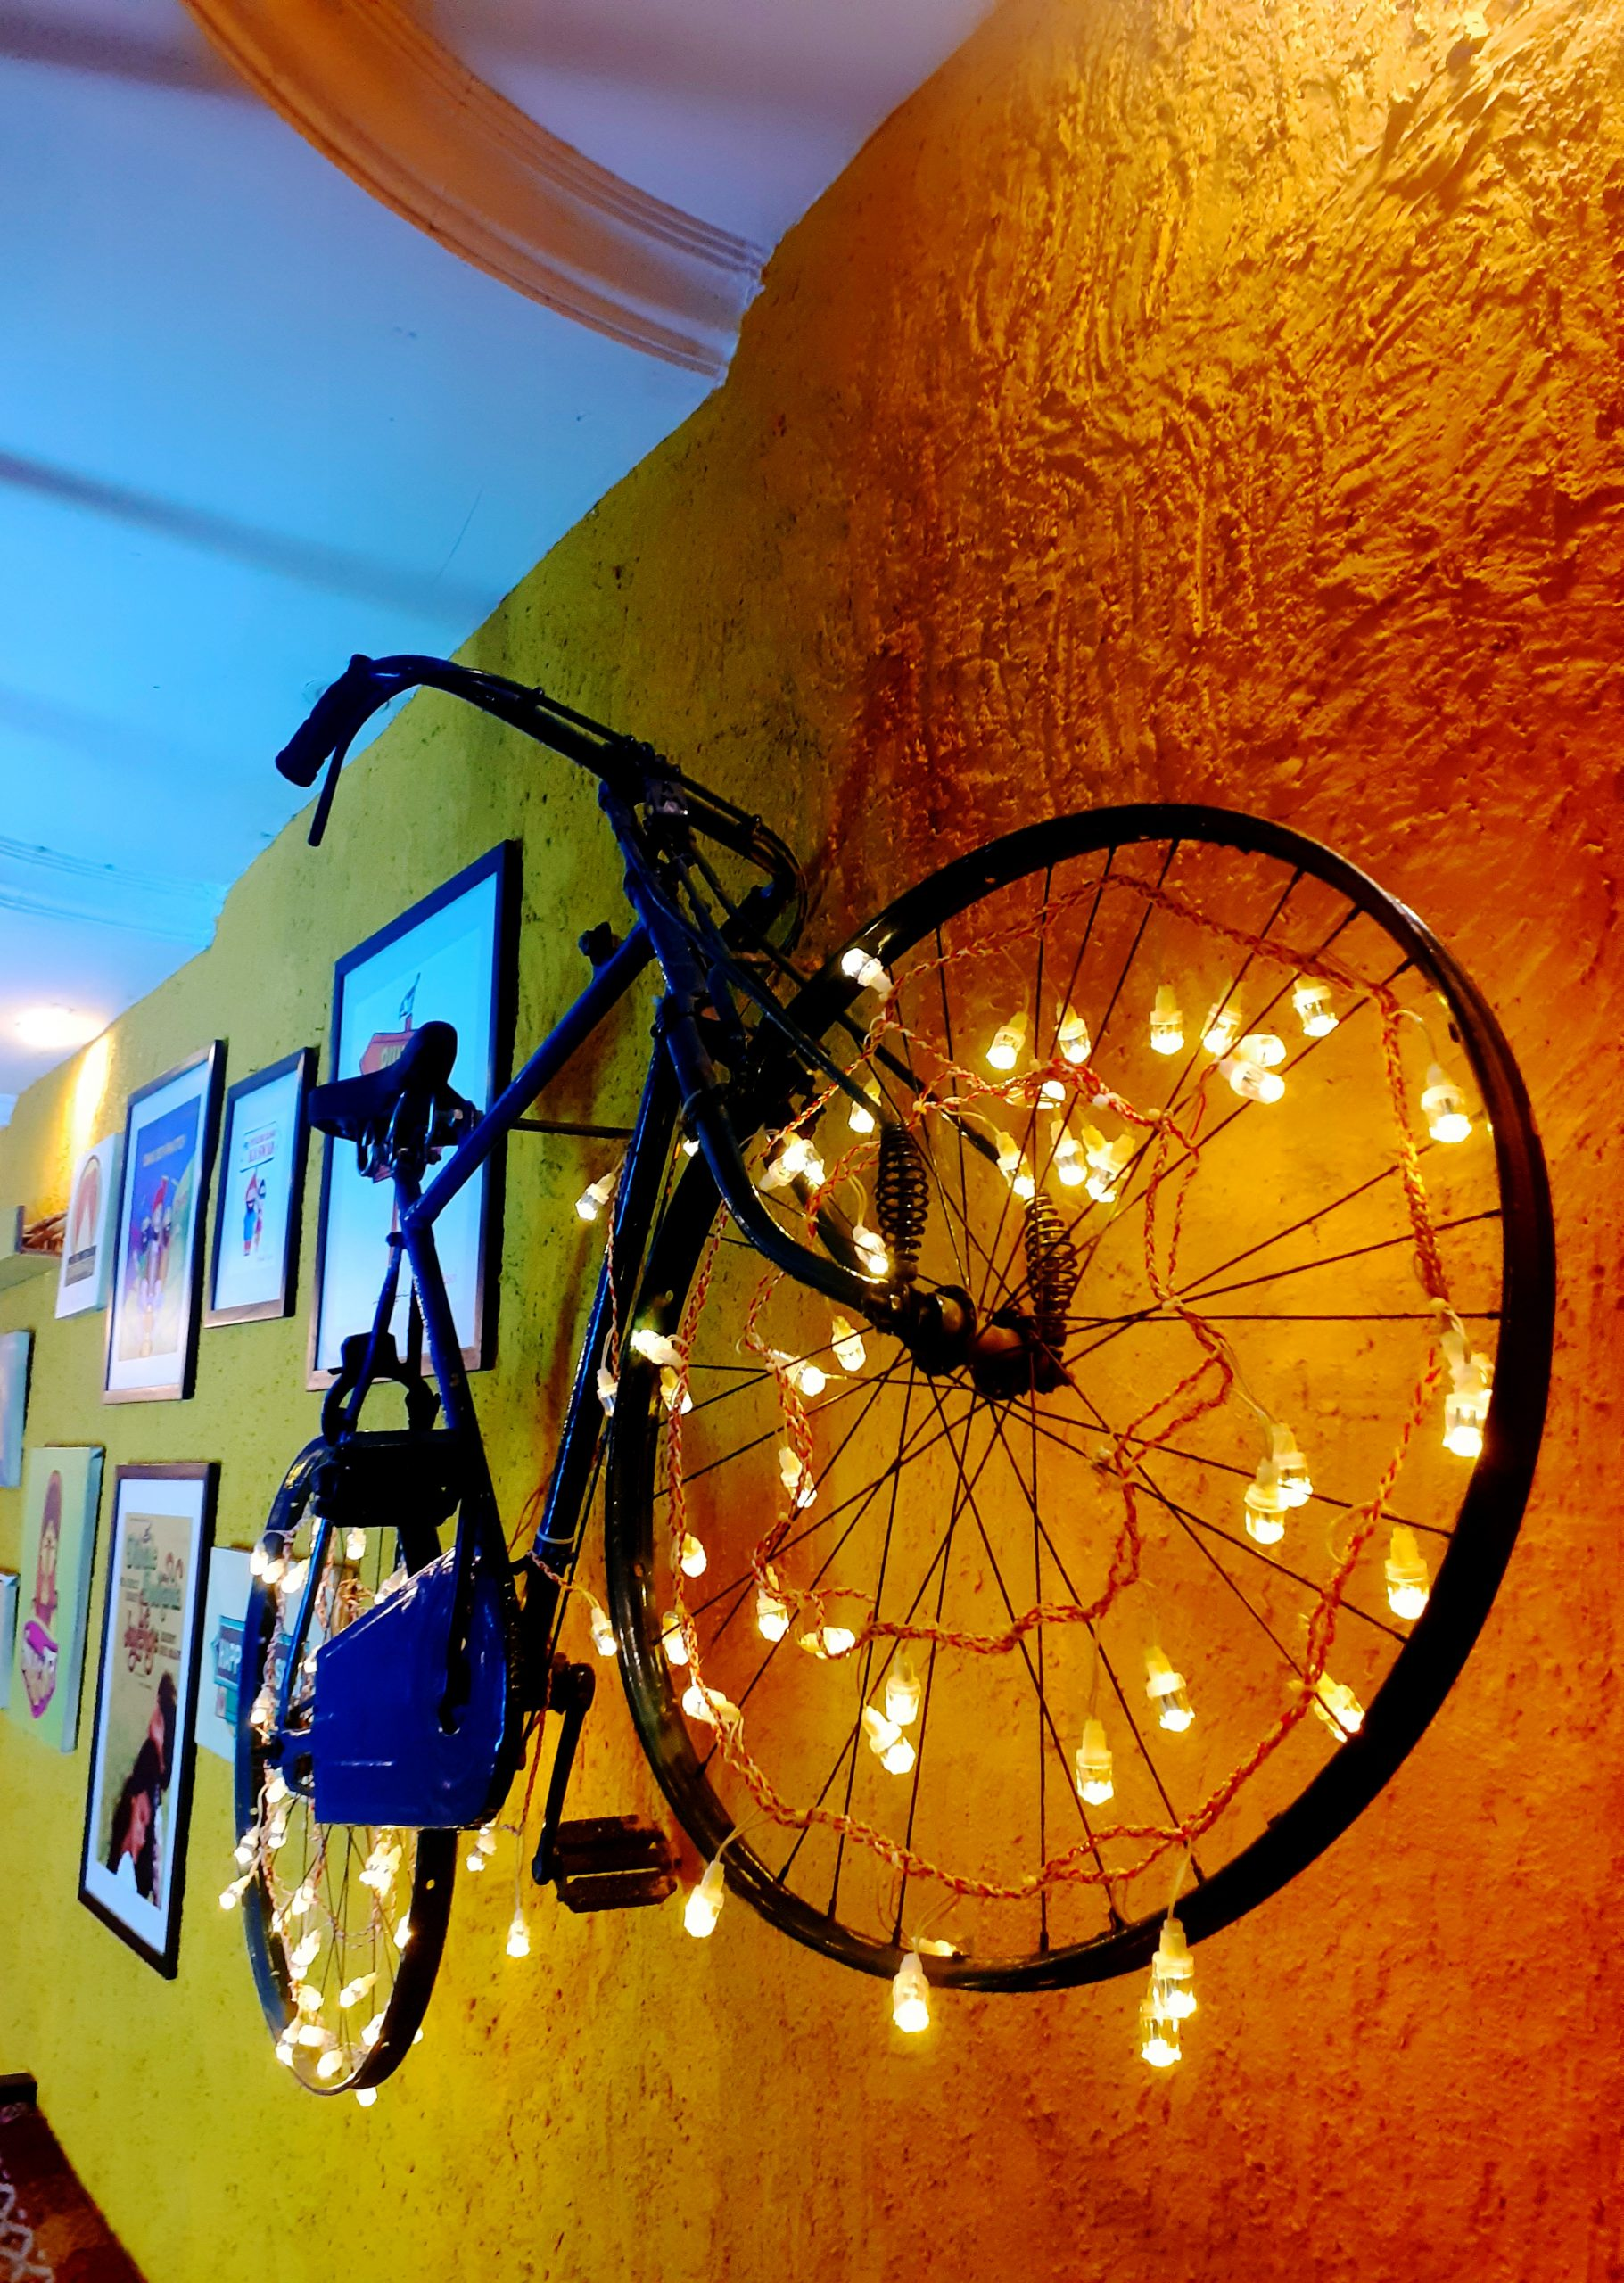 cycle hanging on the wall